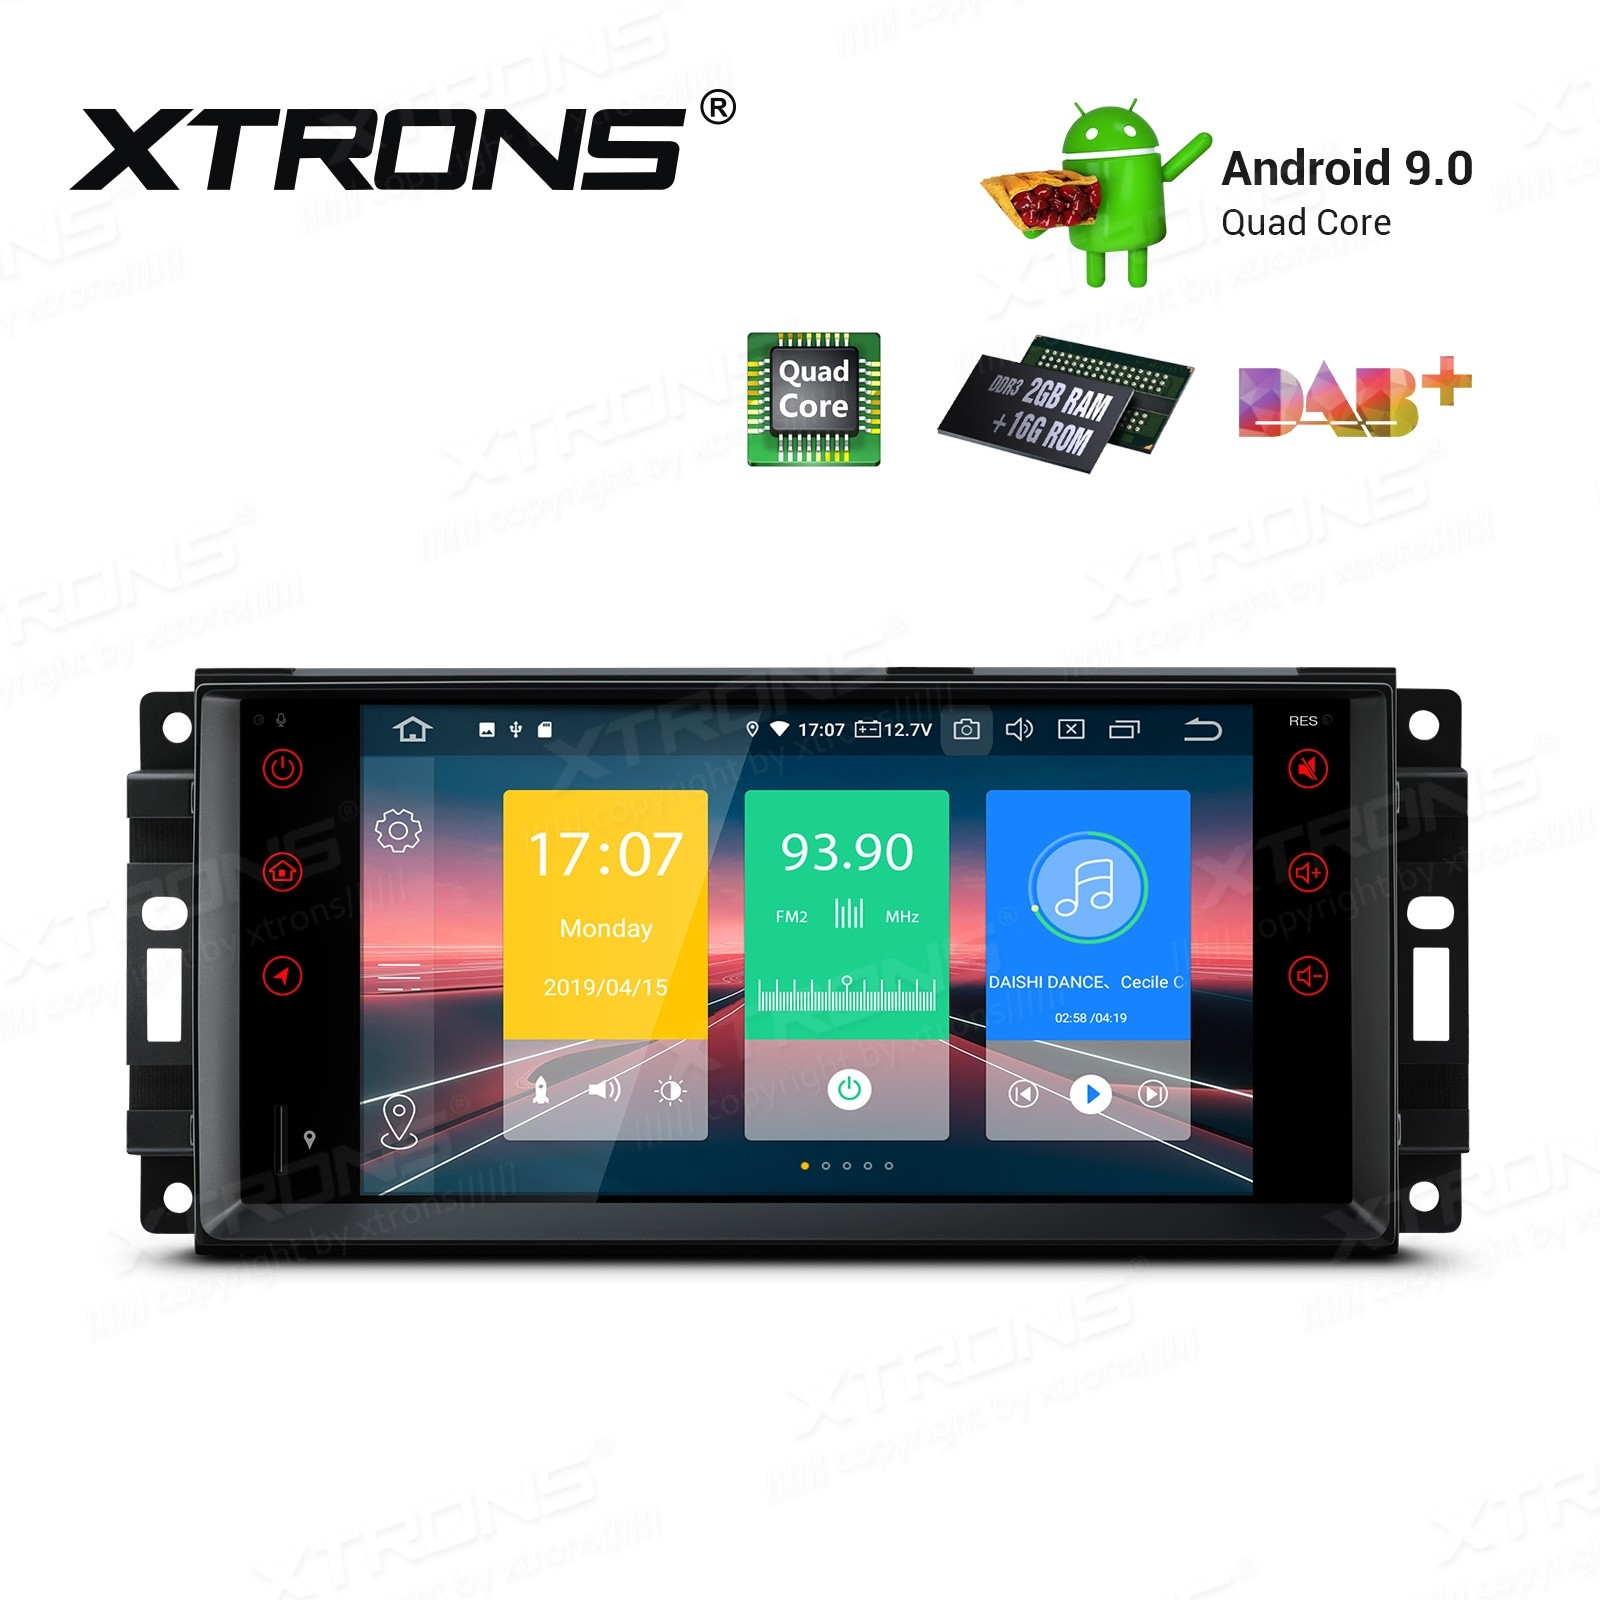 7 inch Android 9.0 Car Stereo Multimedia Navigation System Custom fit for JEEP / DODGE / Chrysler